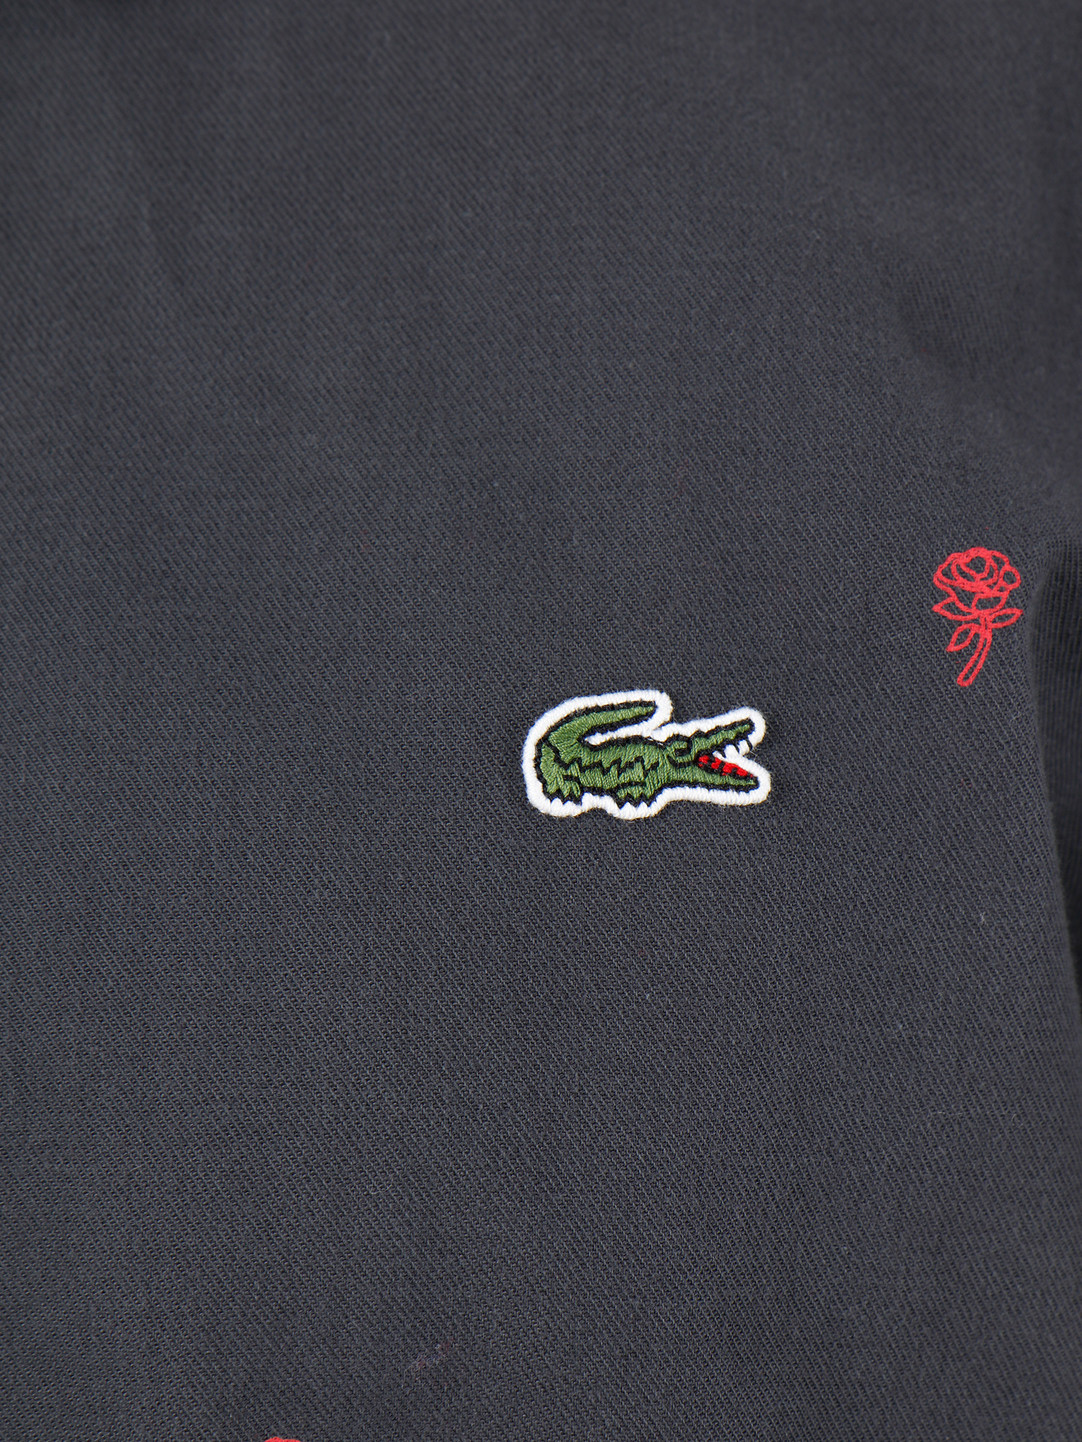 Lacoste Lacoste 1HC2 Longsleeve Woven Shirt Graphite Multico CH8225-93